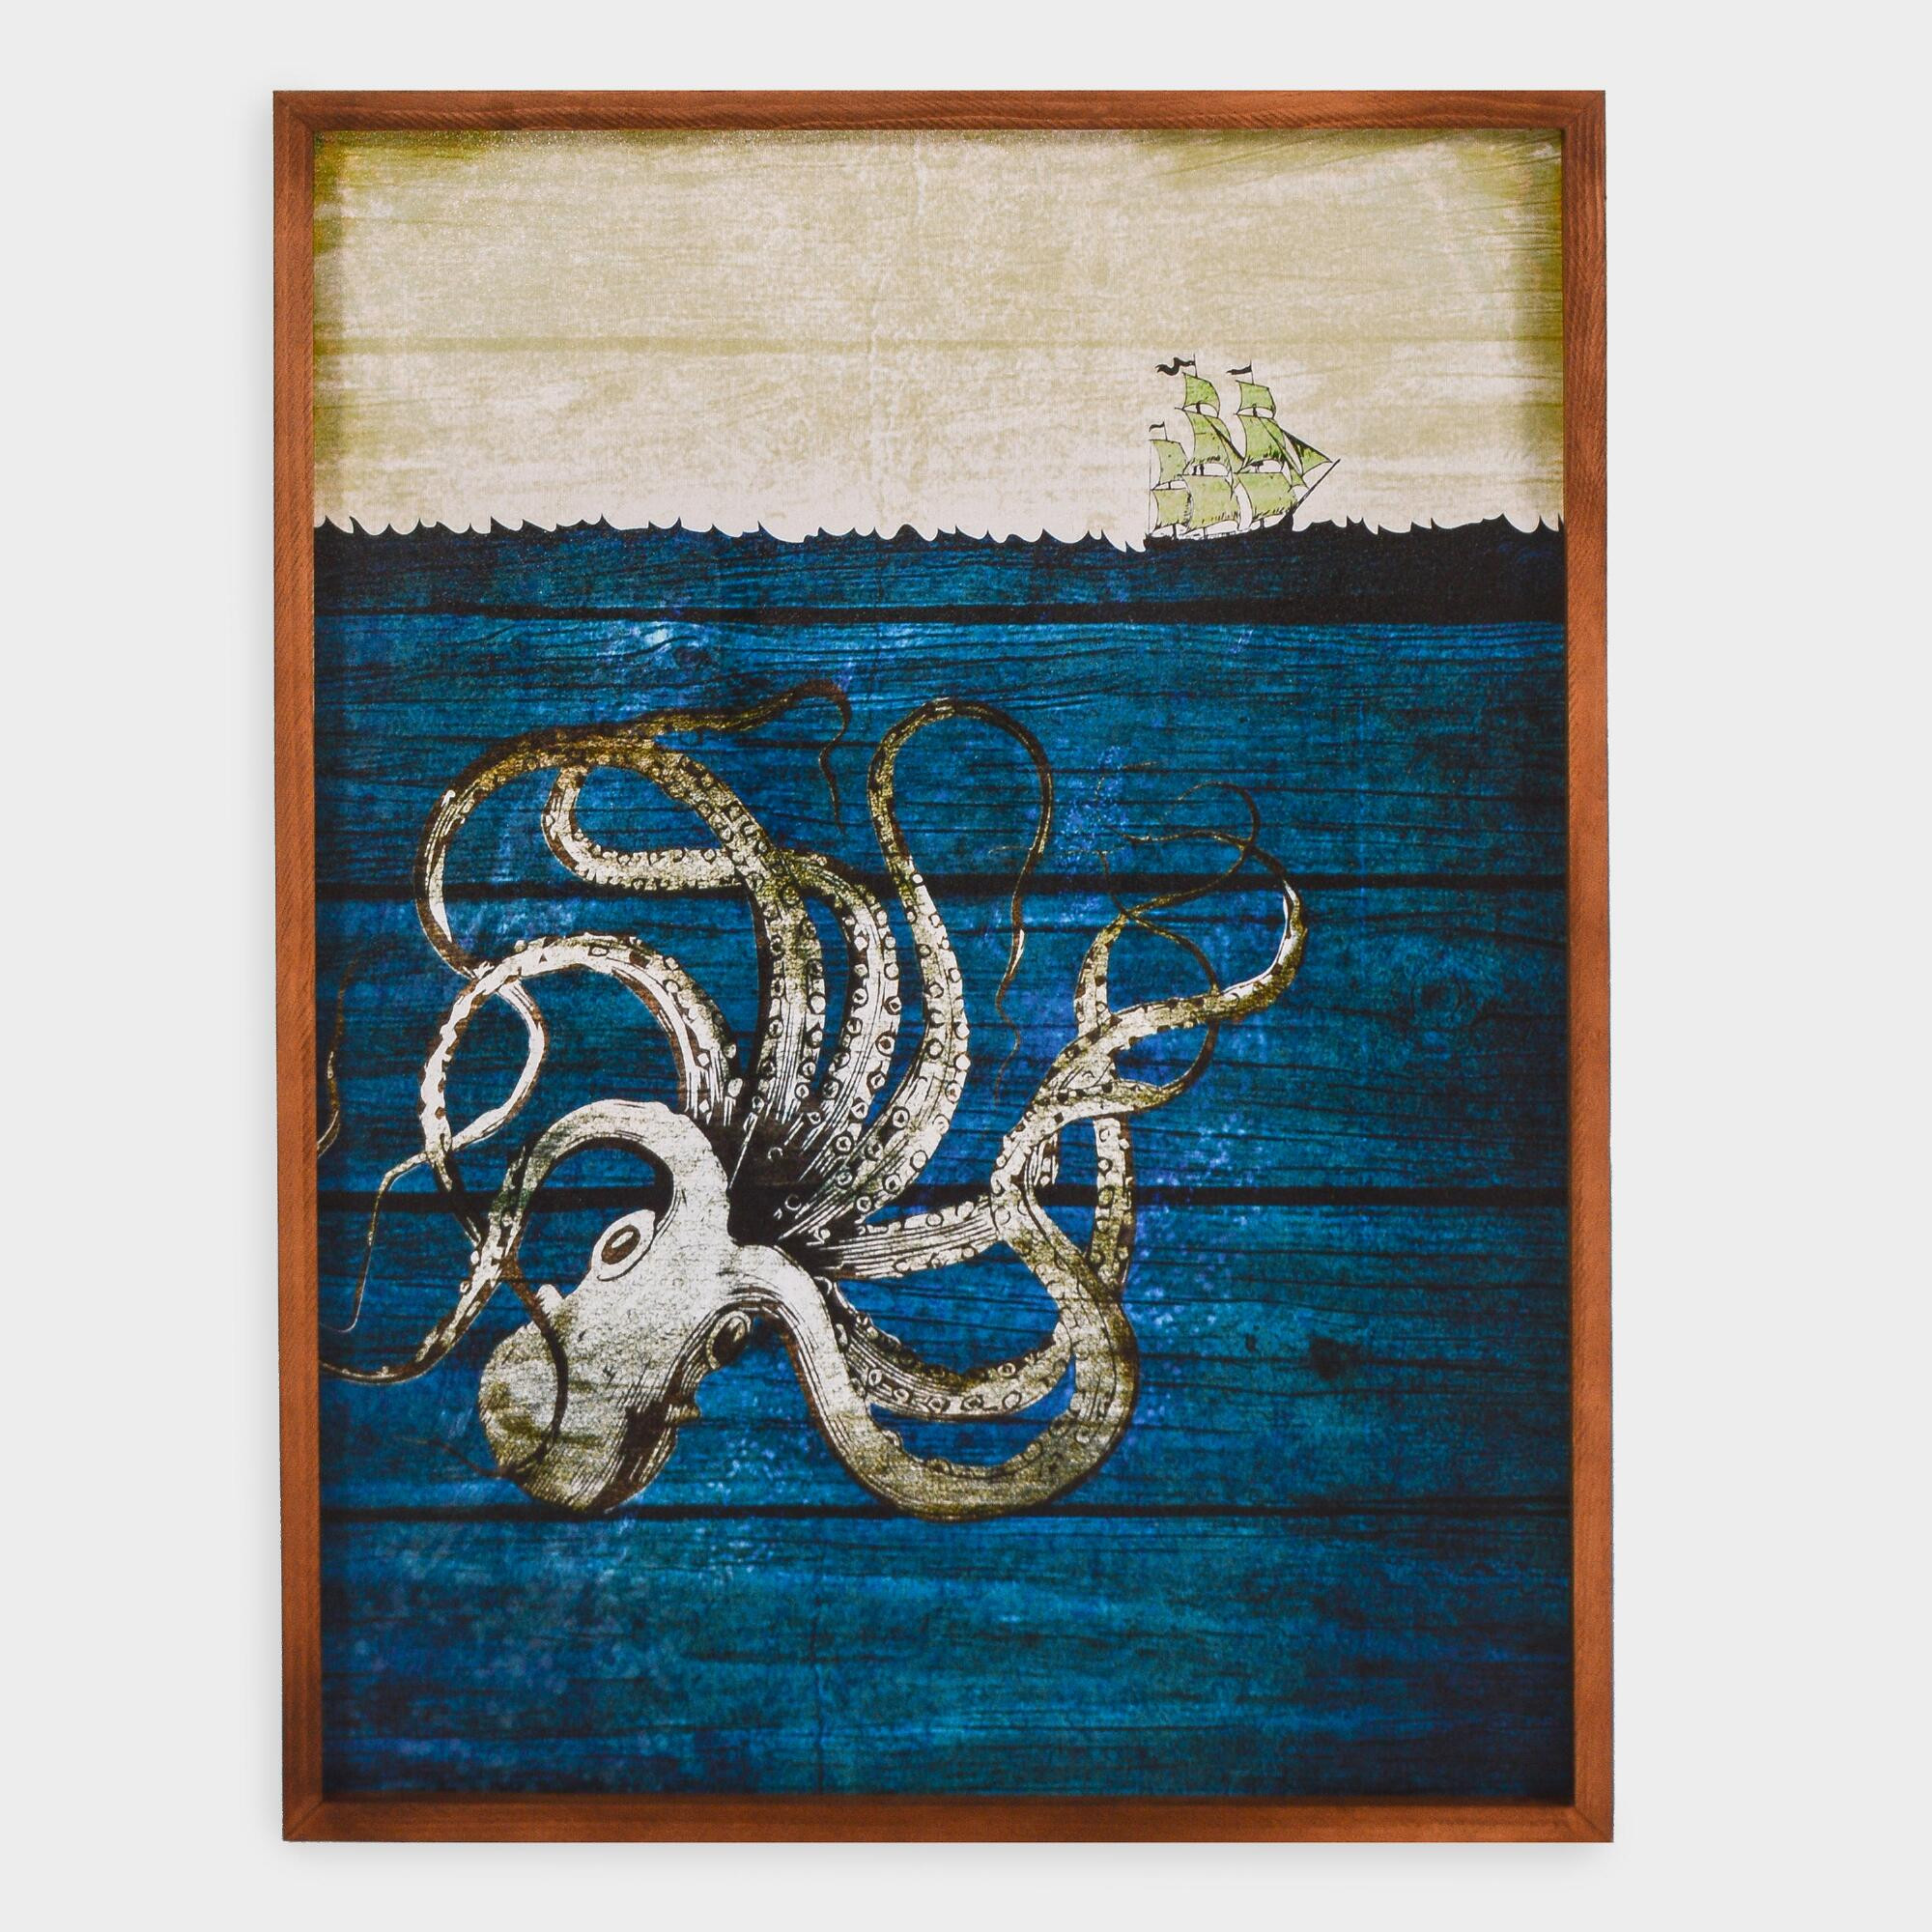 Best ideas about Octopus Wall Art . Save or Pin Rustic Octopus Wall Art Now.